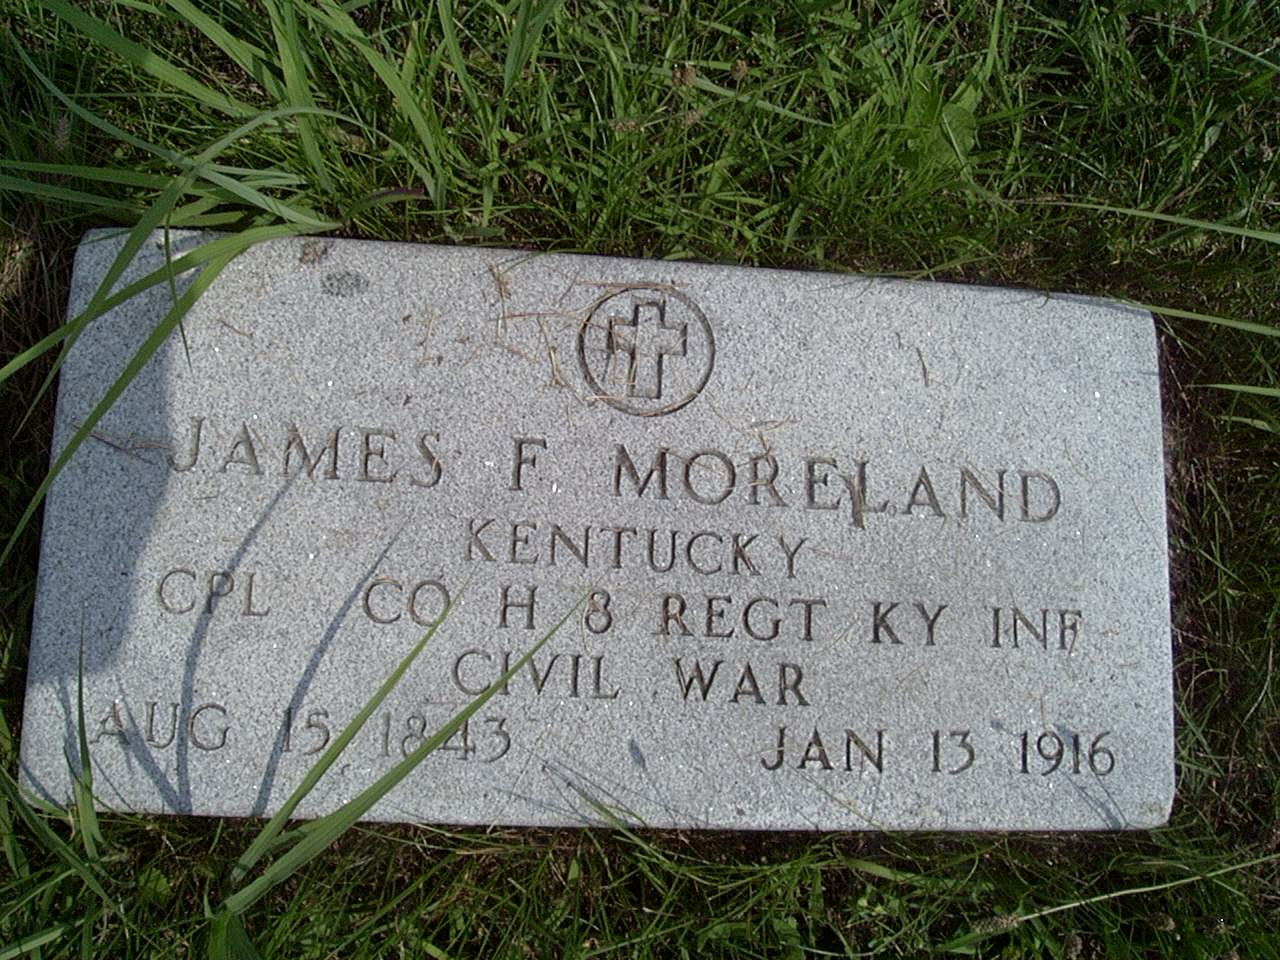 James Francis Moreland